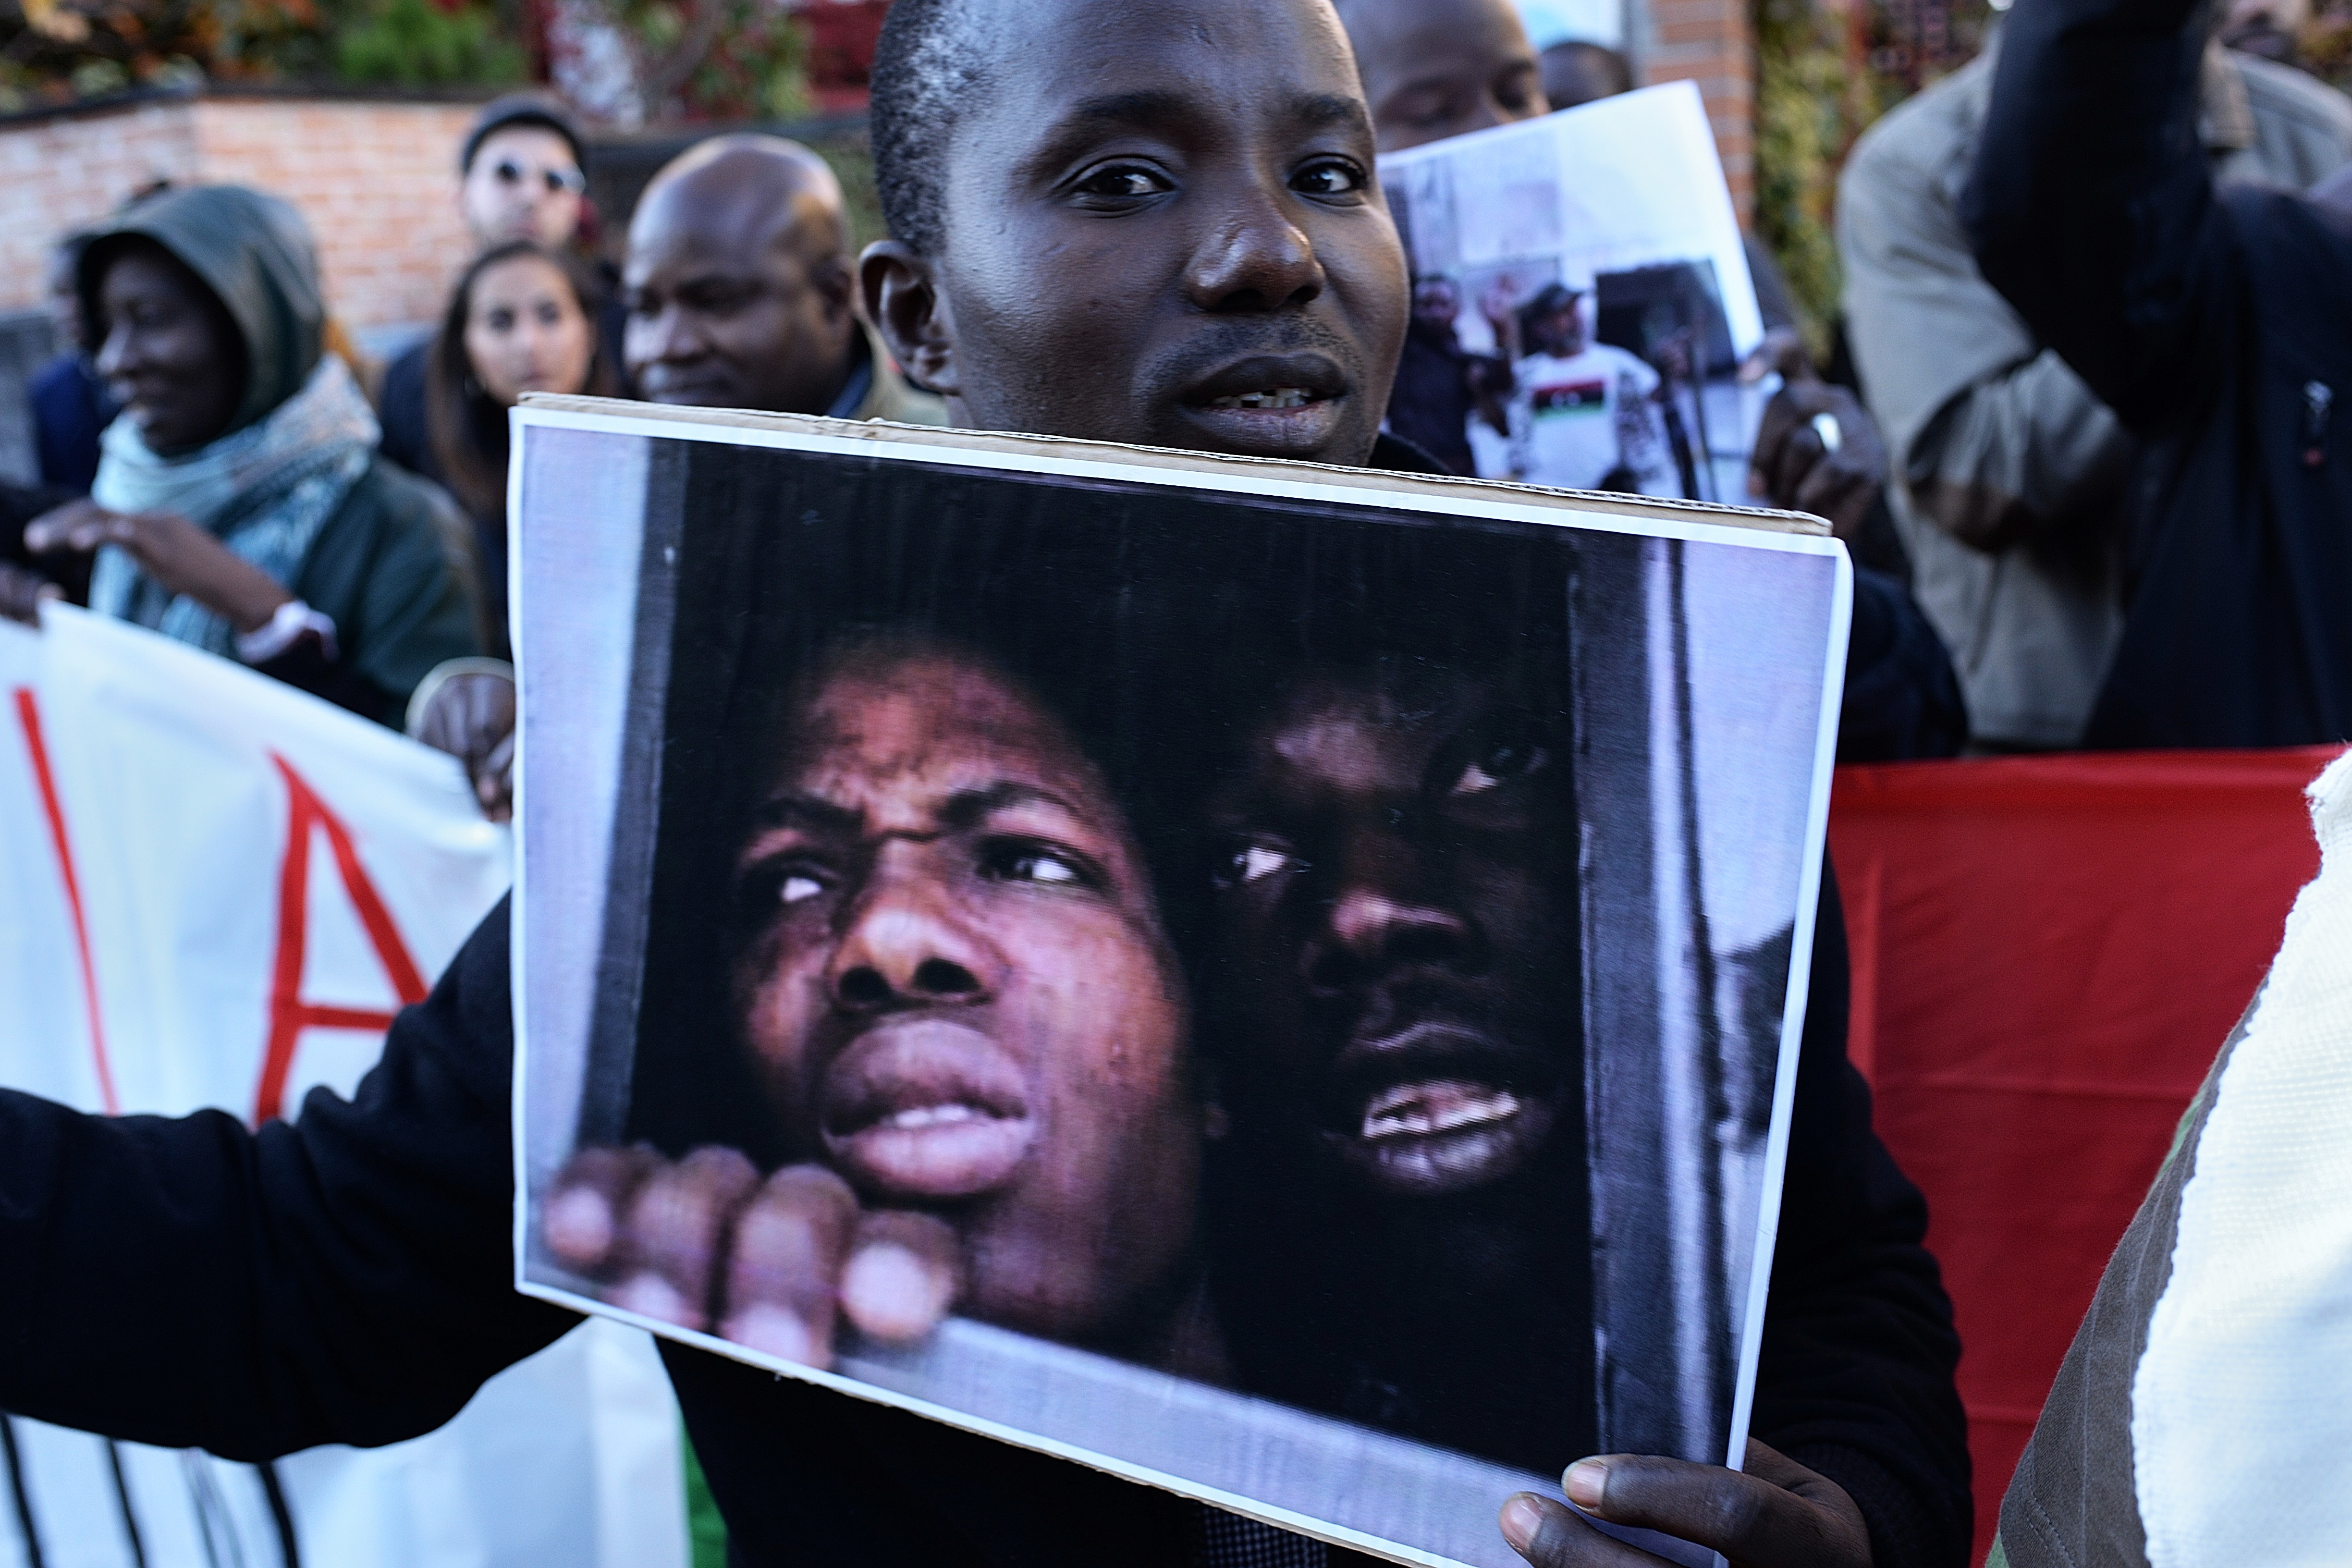 A man holds a photo during a protest against against slavery in Libya in front of the Libya embassy in Madrid on 26th November, 2017.